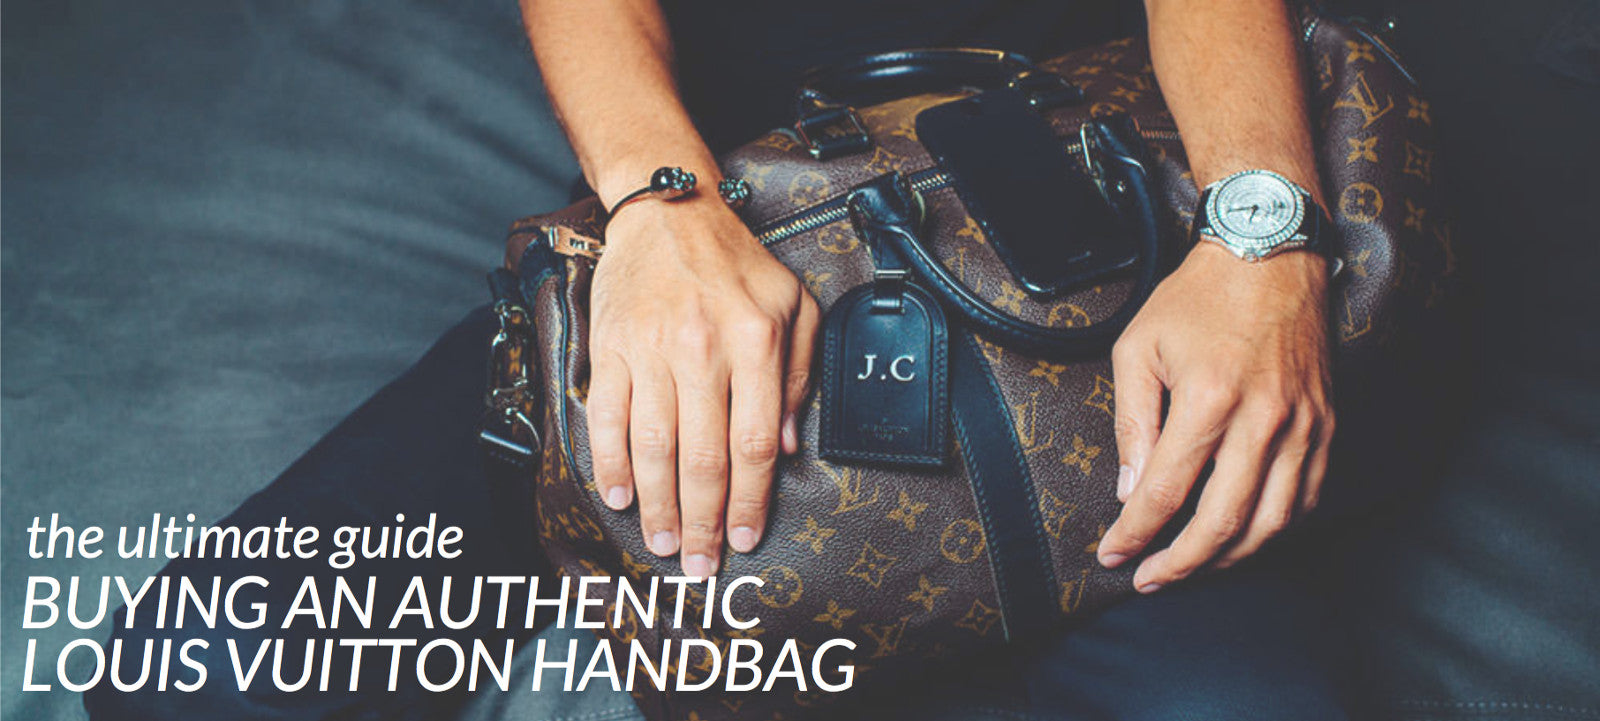 Experts Guide To Buying An Authentic Louis Vuitton Handbag >> Buying An Authentic Louis Vuitton Handbag The Ultimate Guide Luxedh